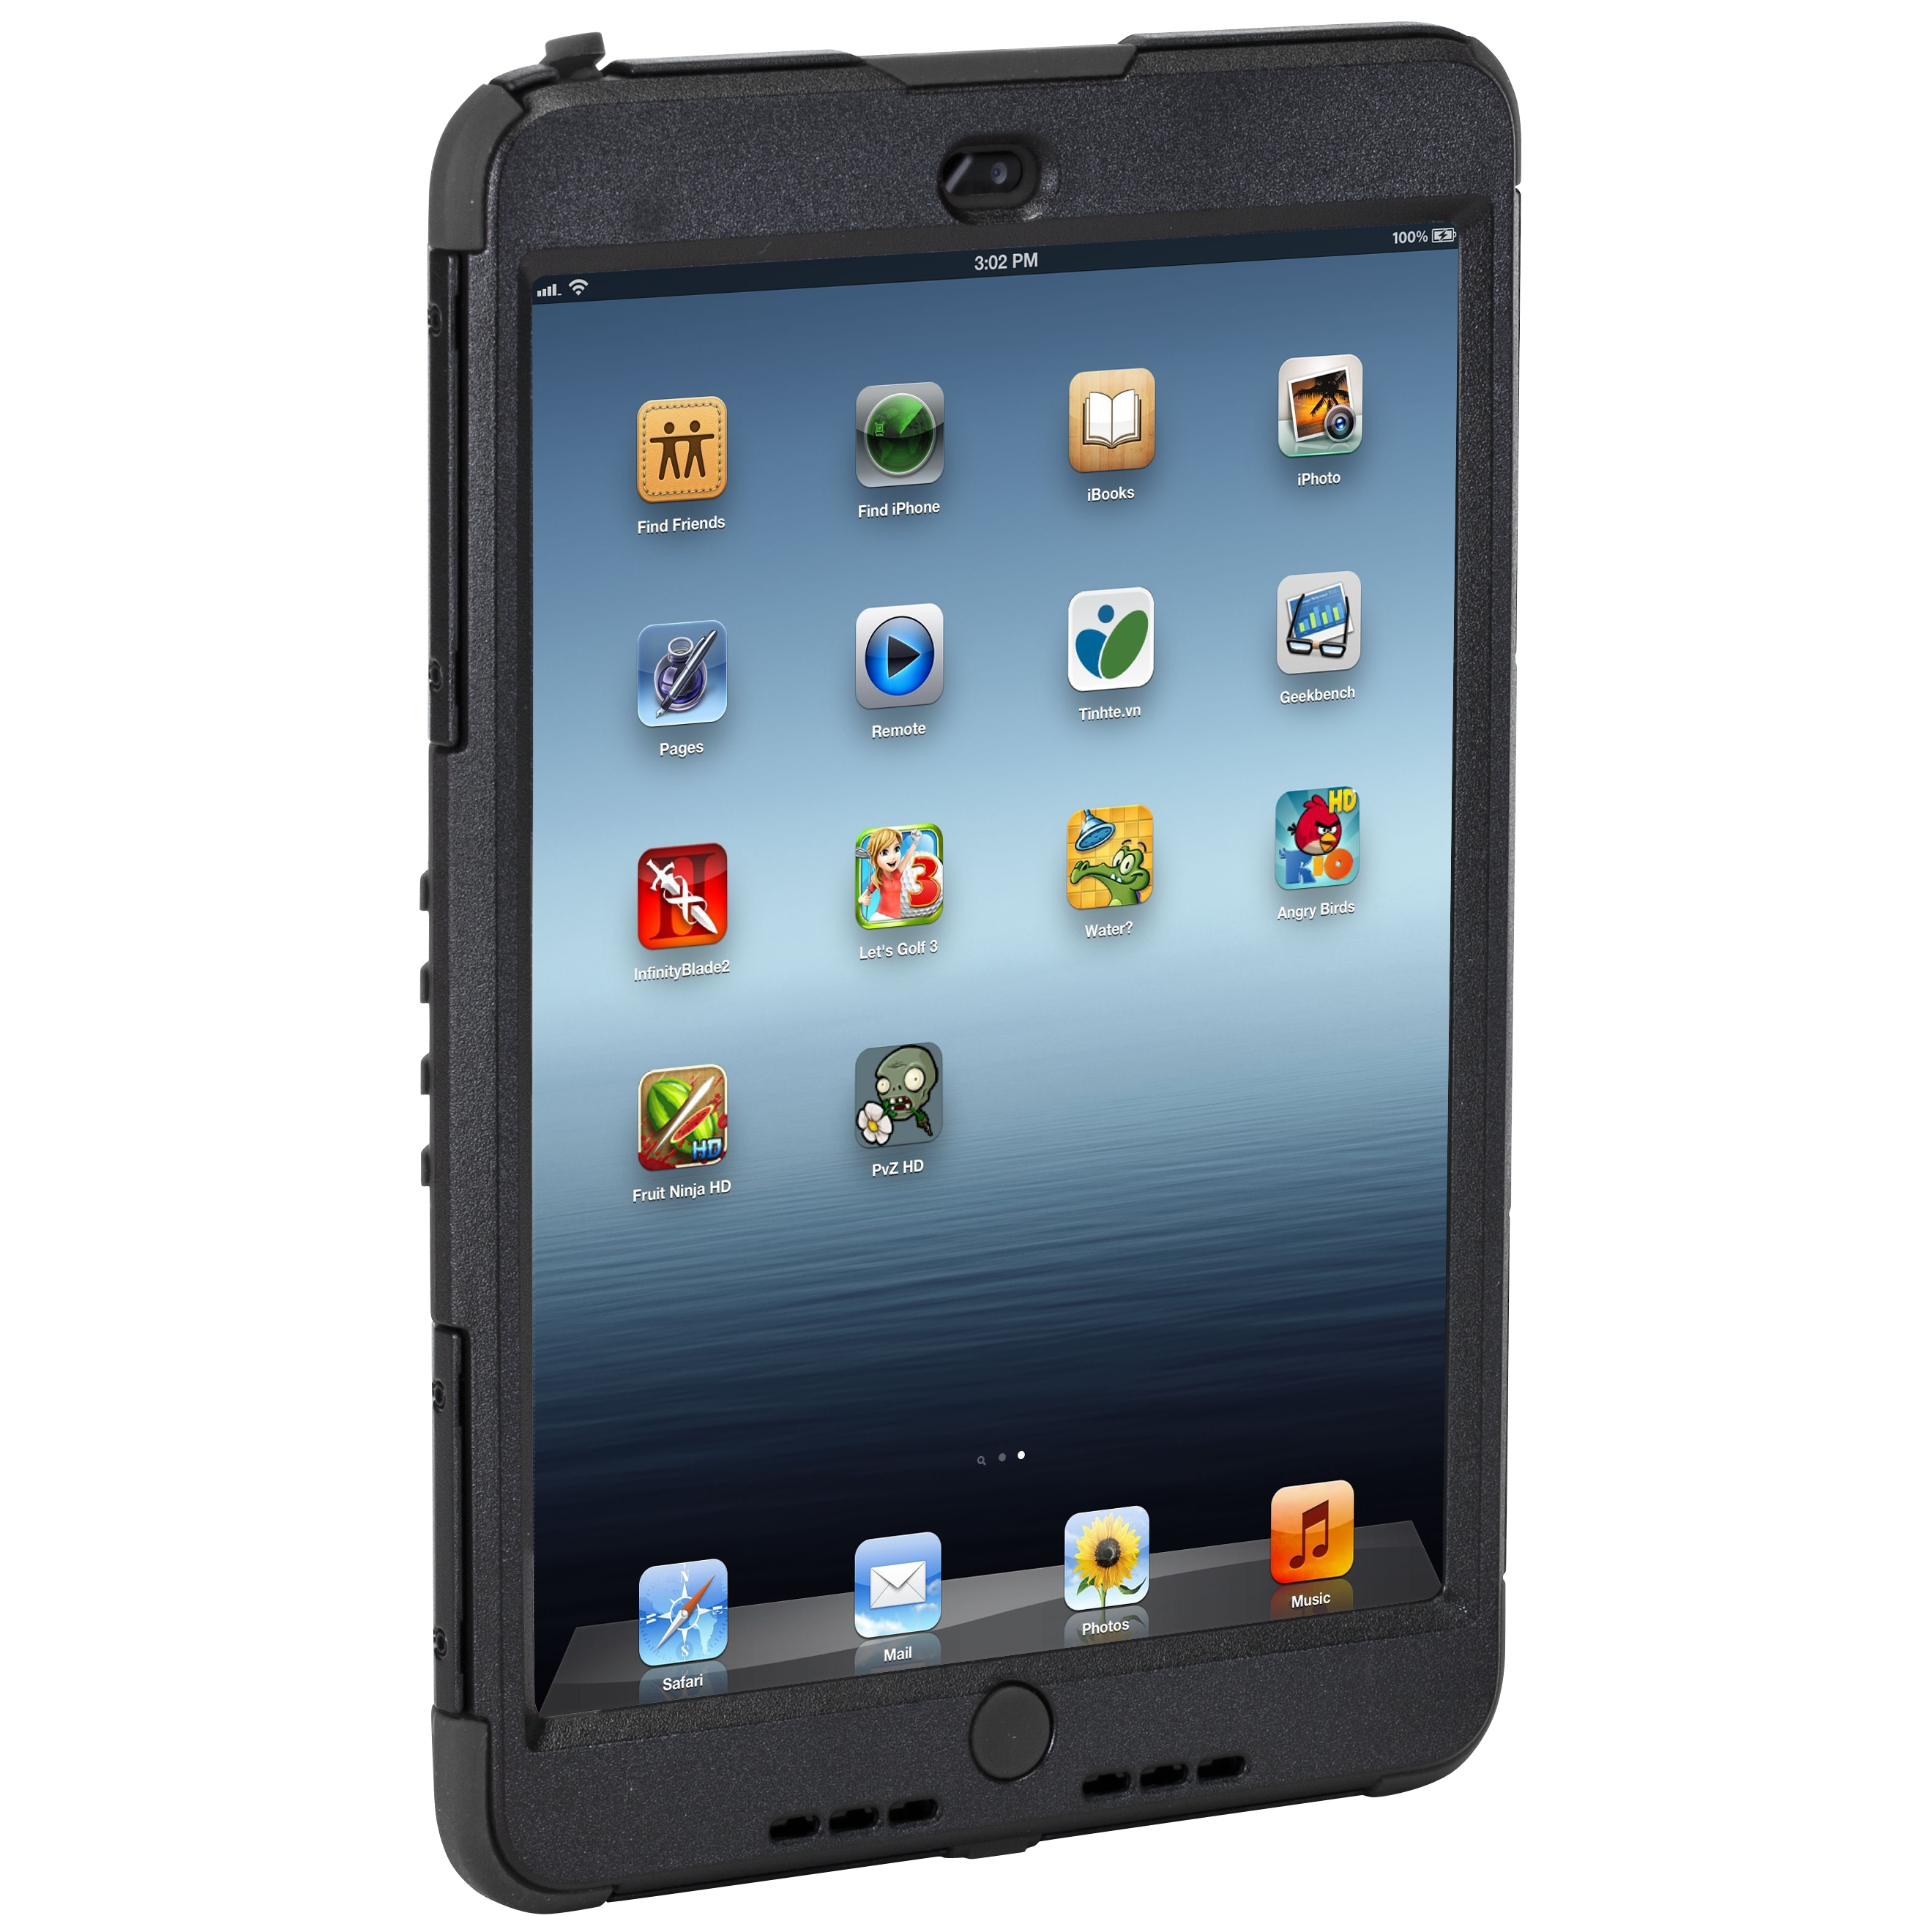 safeport® case rugged max pro for ipad mini - thd046us - black